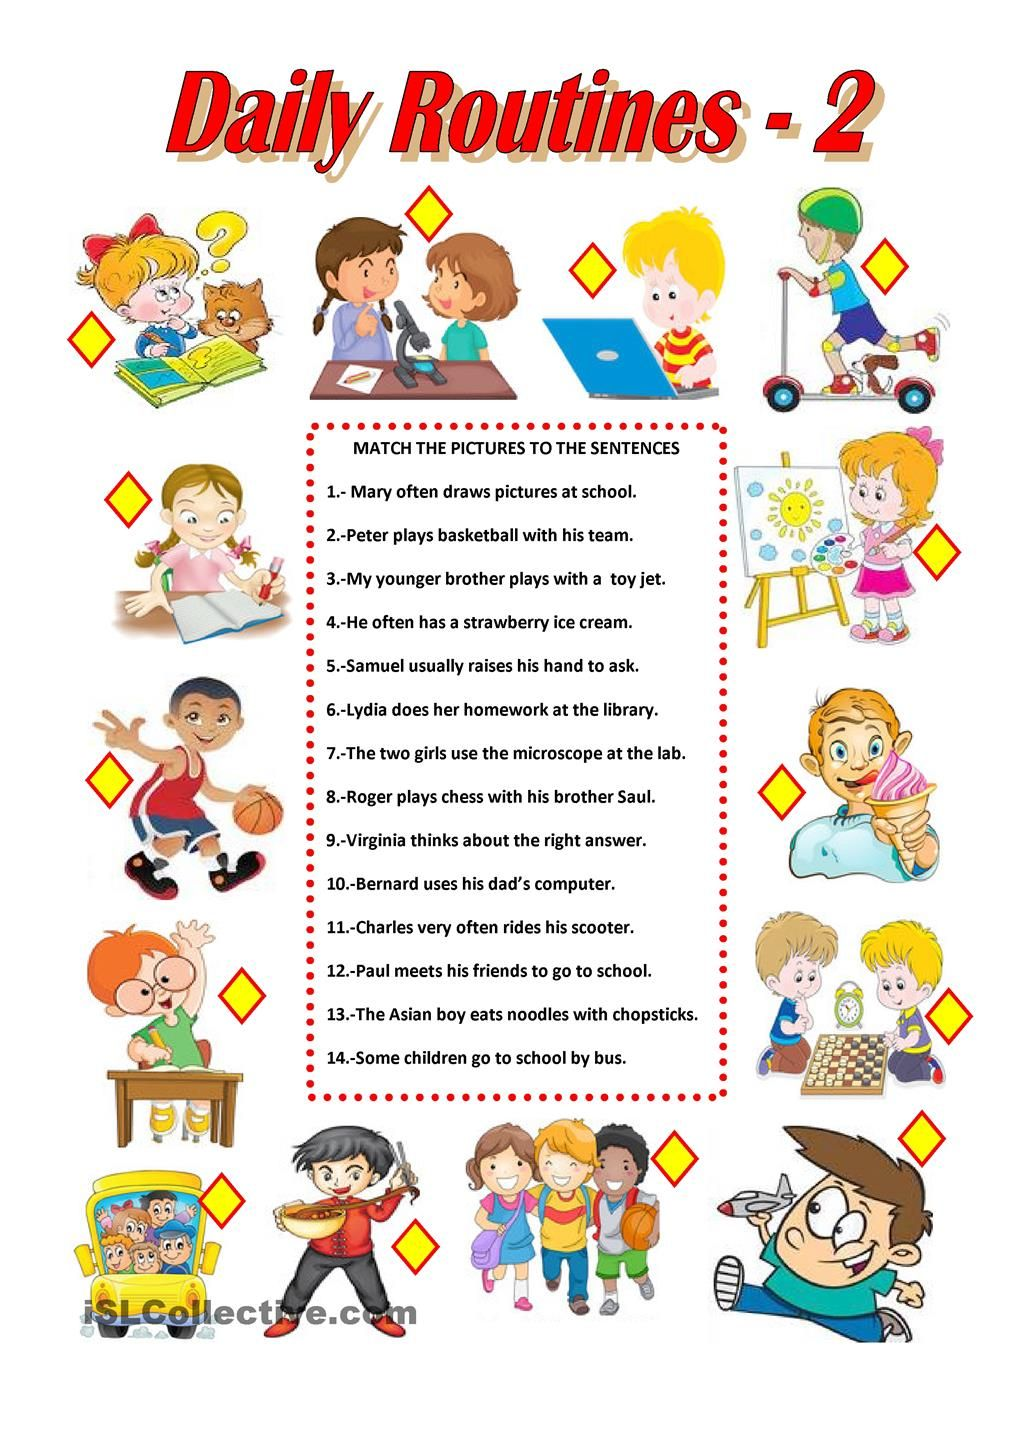 DAILY ROUTINES- 2 worksheet - Free ESL printable worksheets made ...